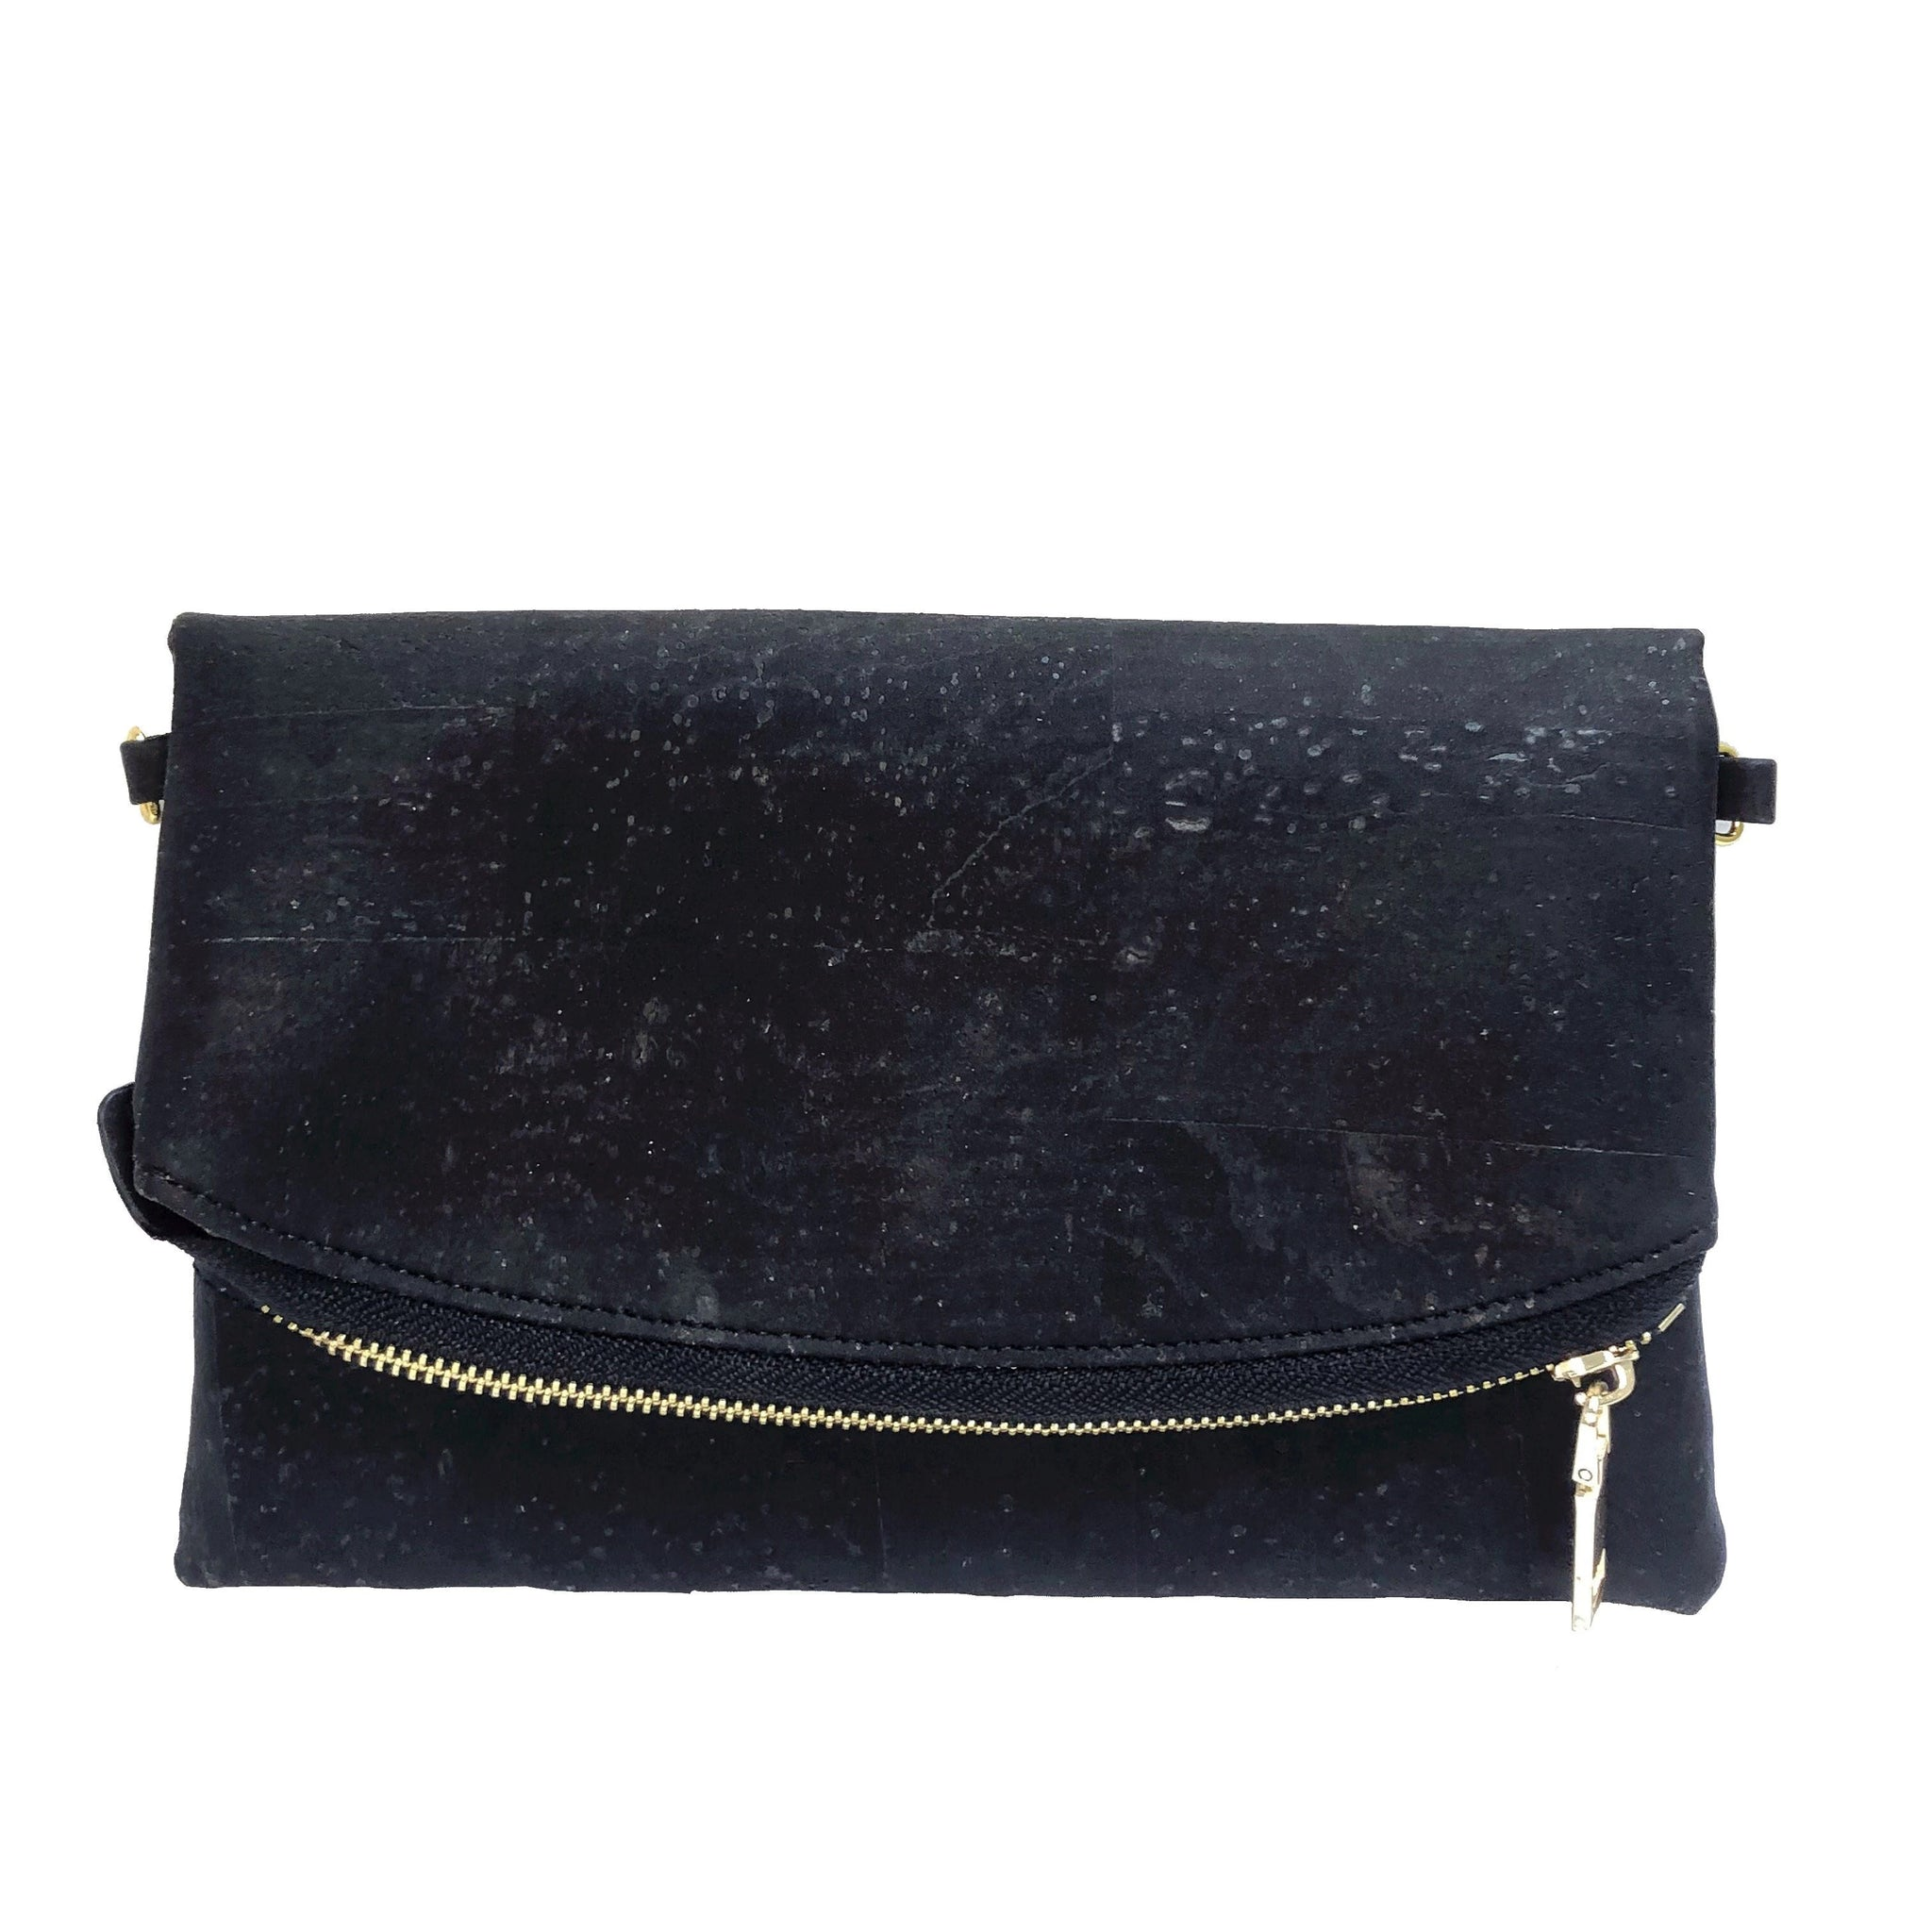 Queork mini cork flapper handbag black